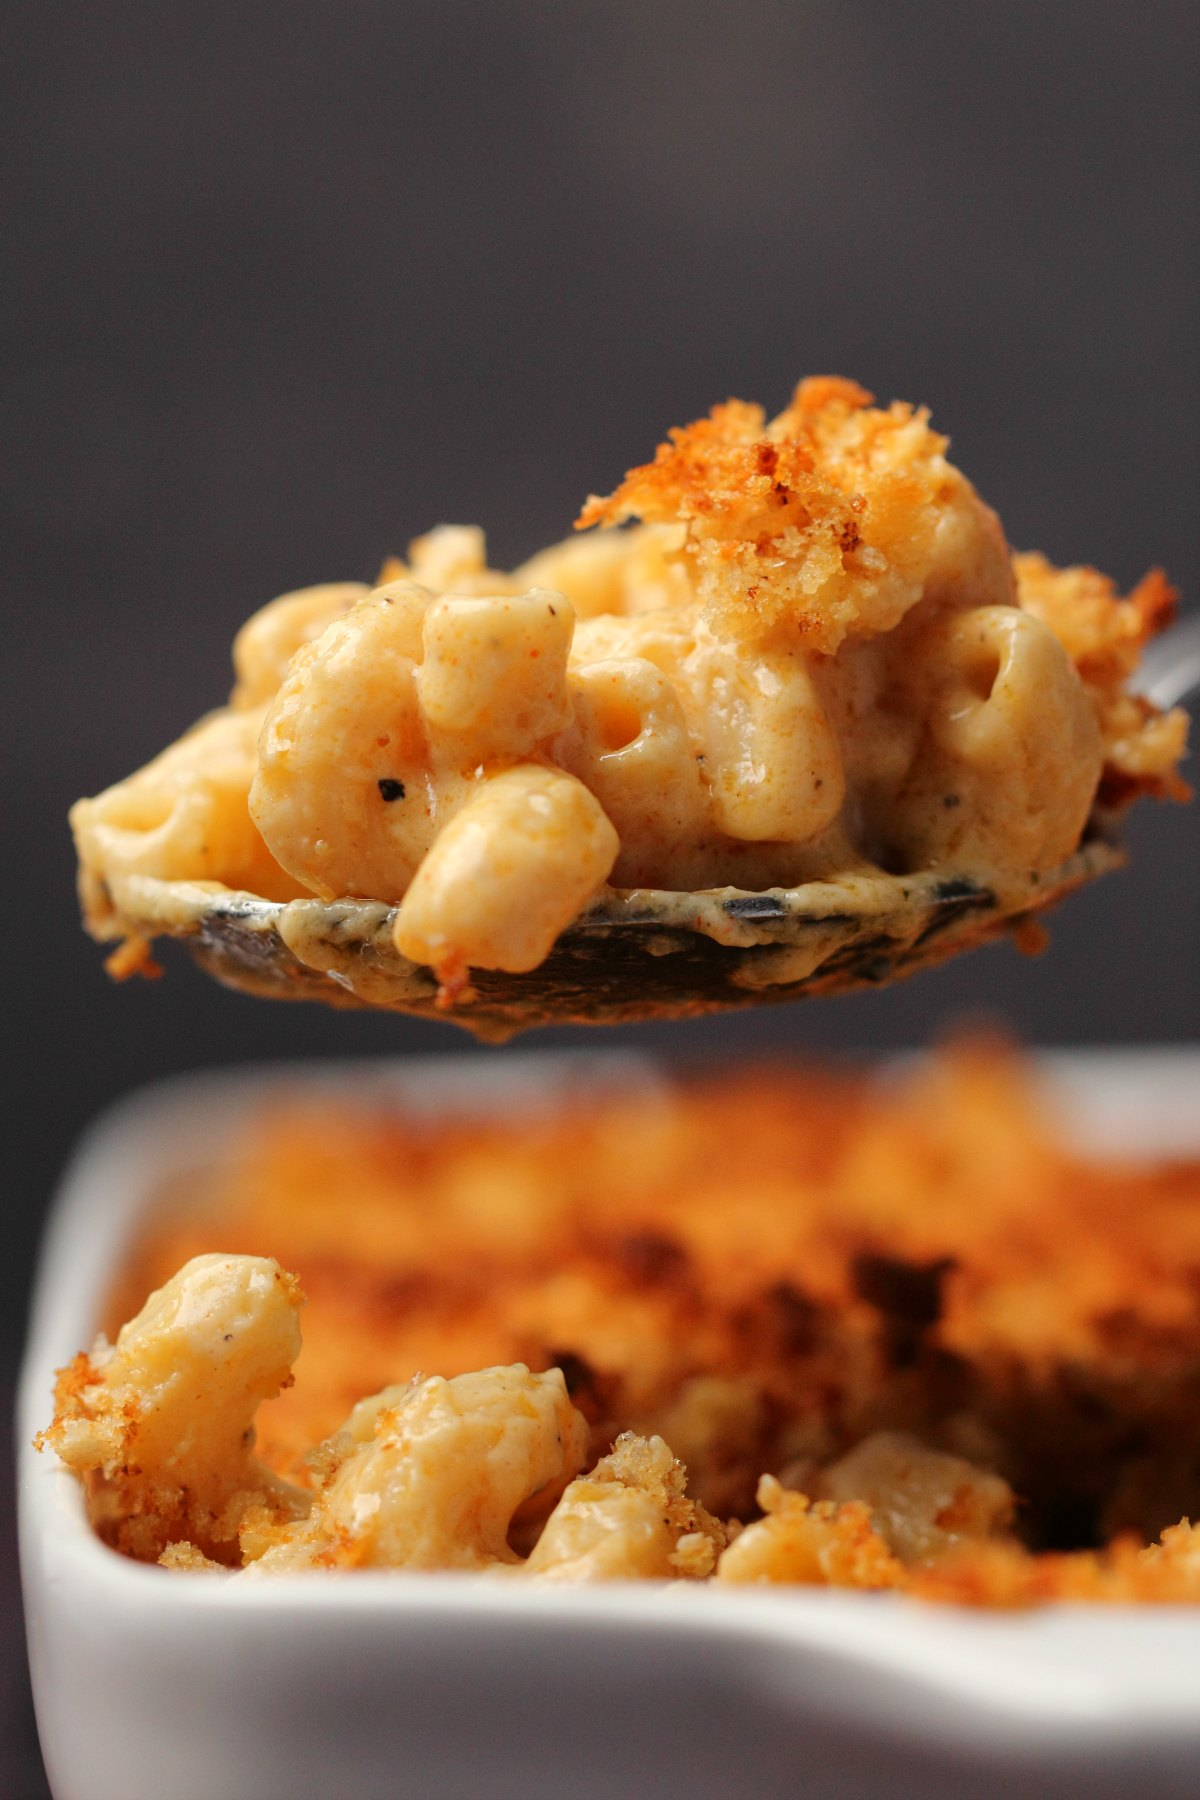 A large spoonful of vegan mac and cheese lifting out of a white dish.